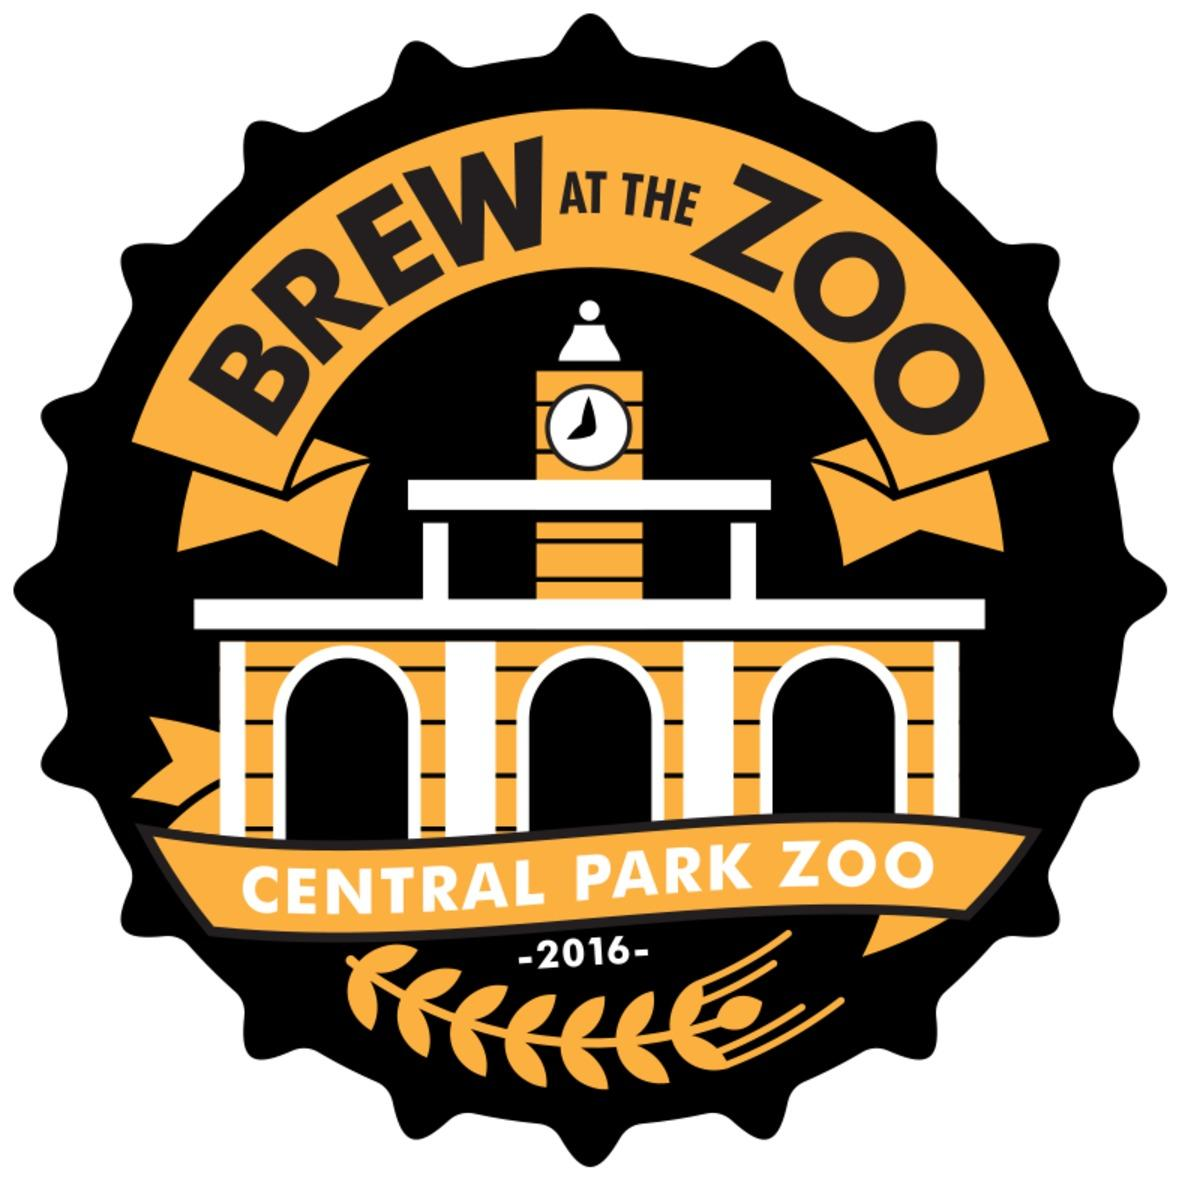 Central park zoo logo clipart graphic library download Brew at the Zoo - Central Park Zoo graphic library download